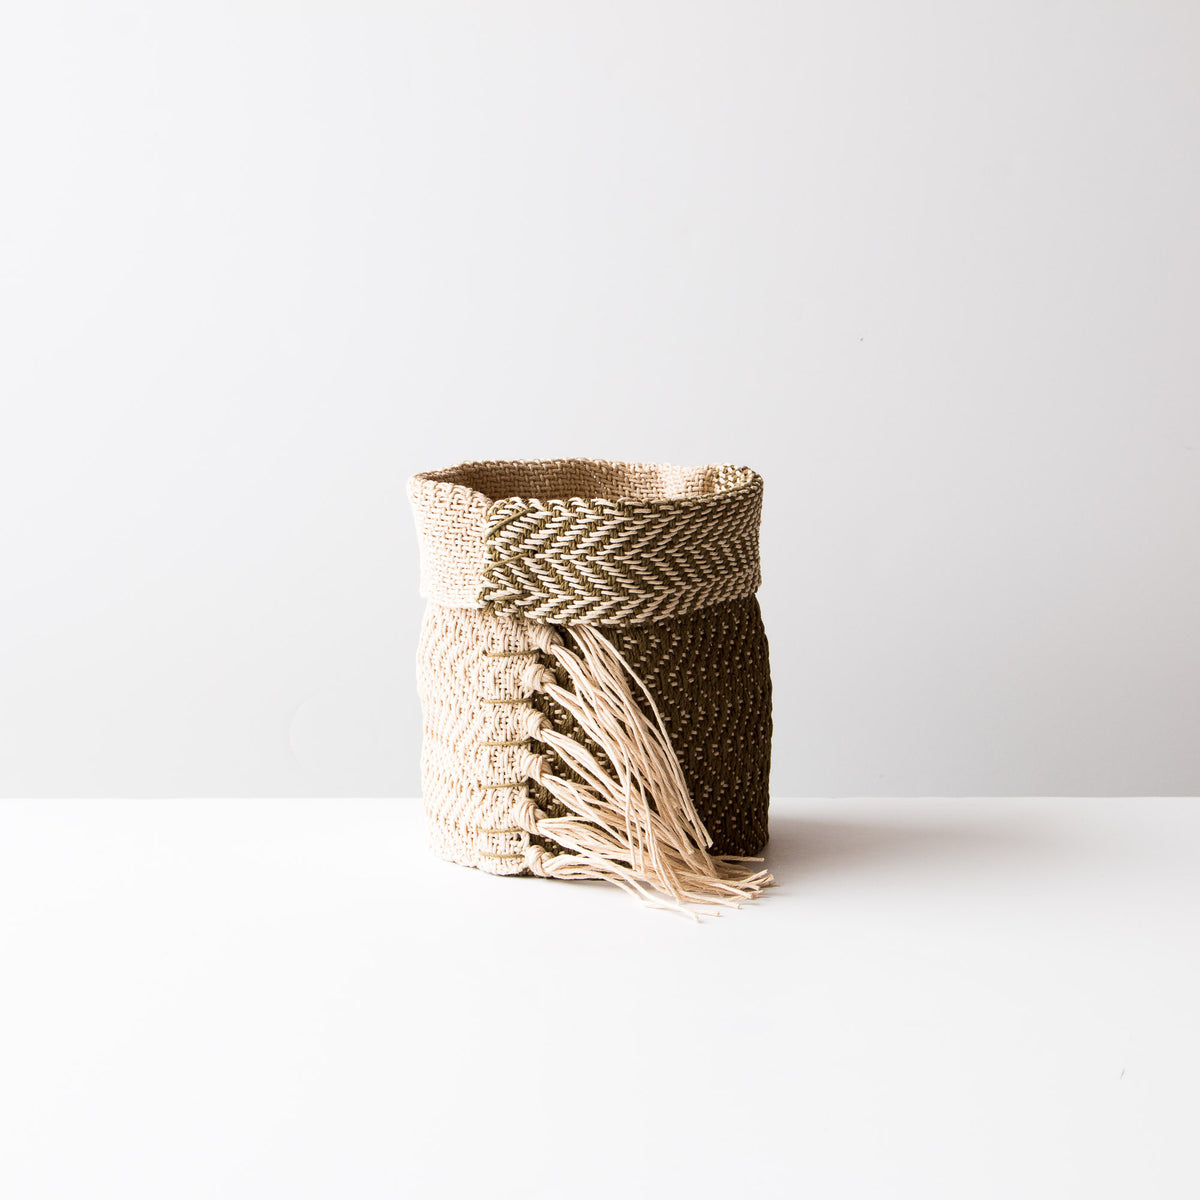 Kaki and Ecru Hemp Table Basket (Small) - Handmade in Canada